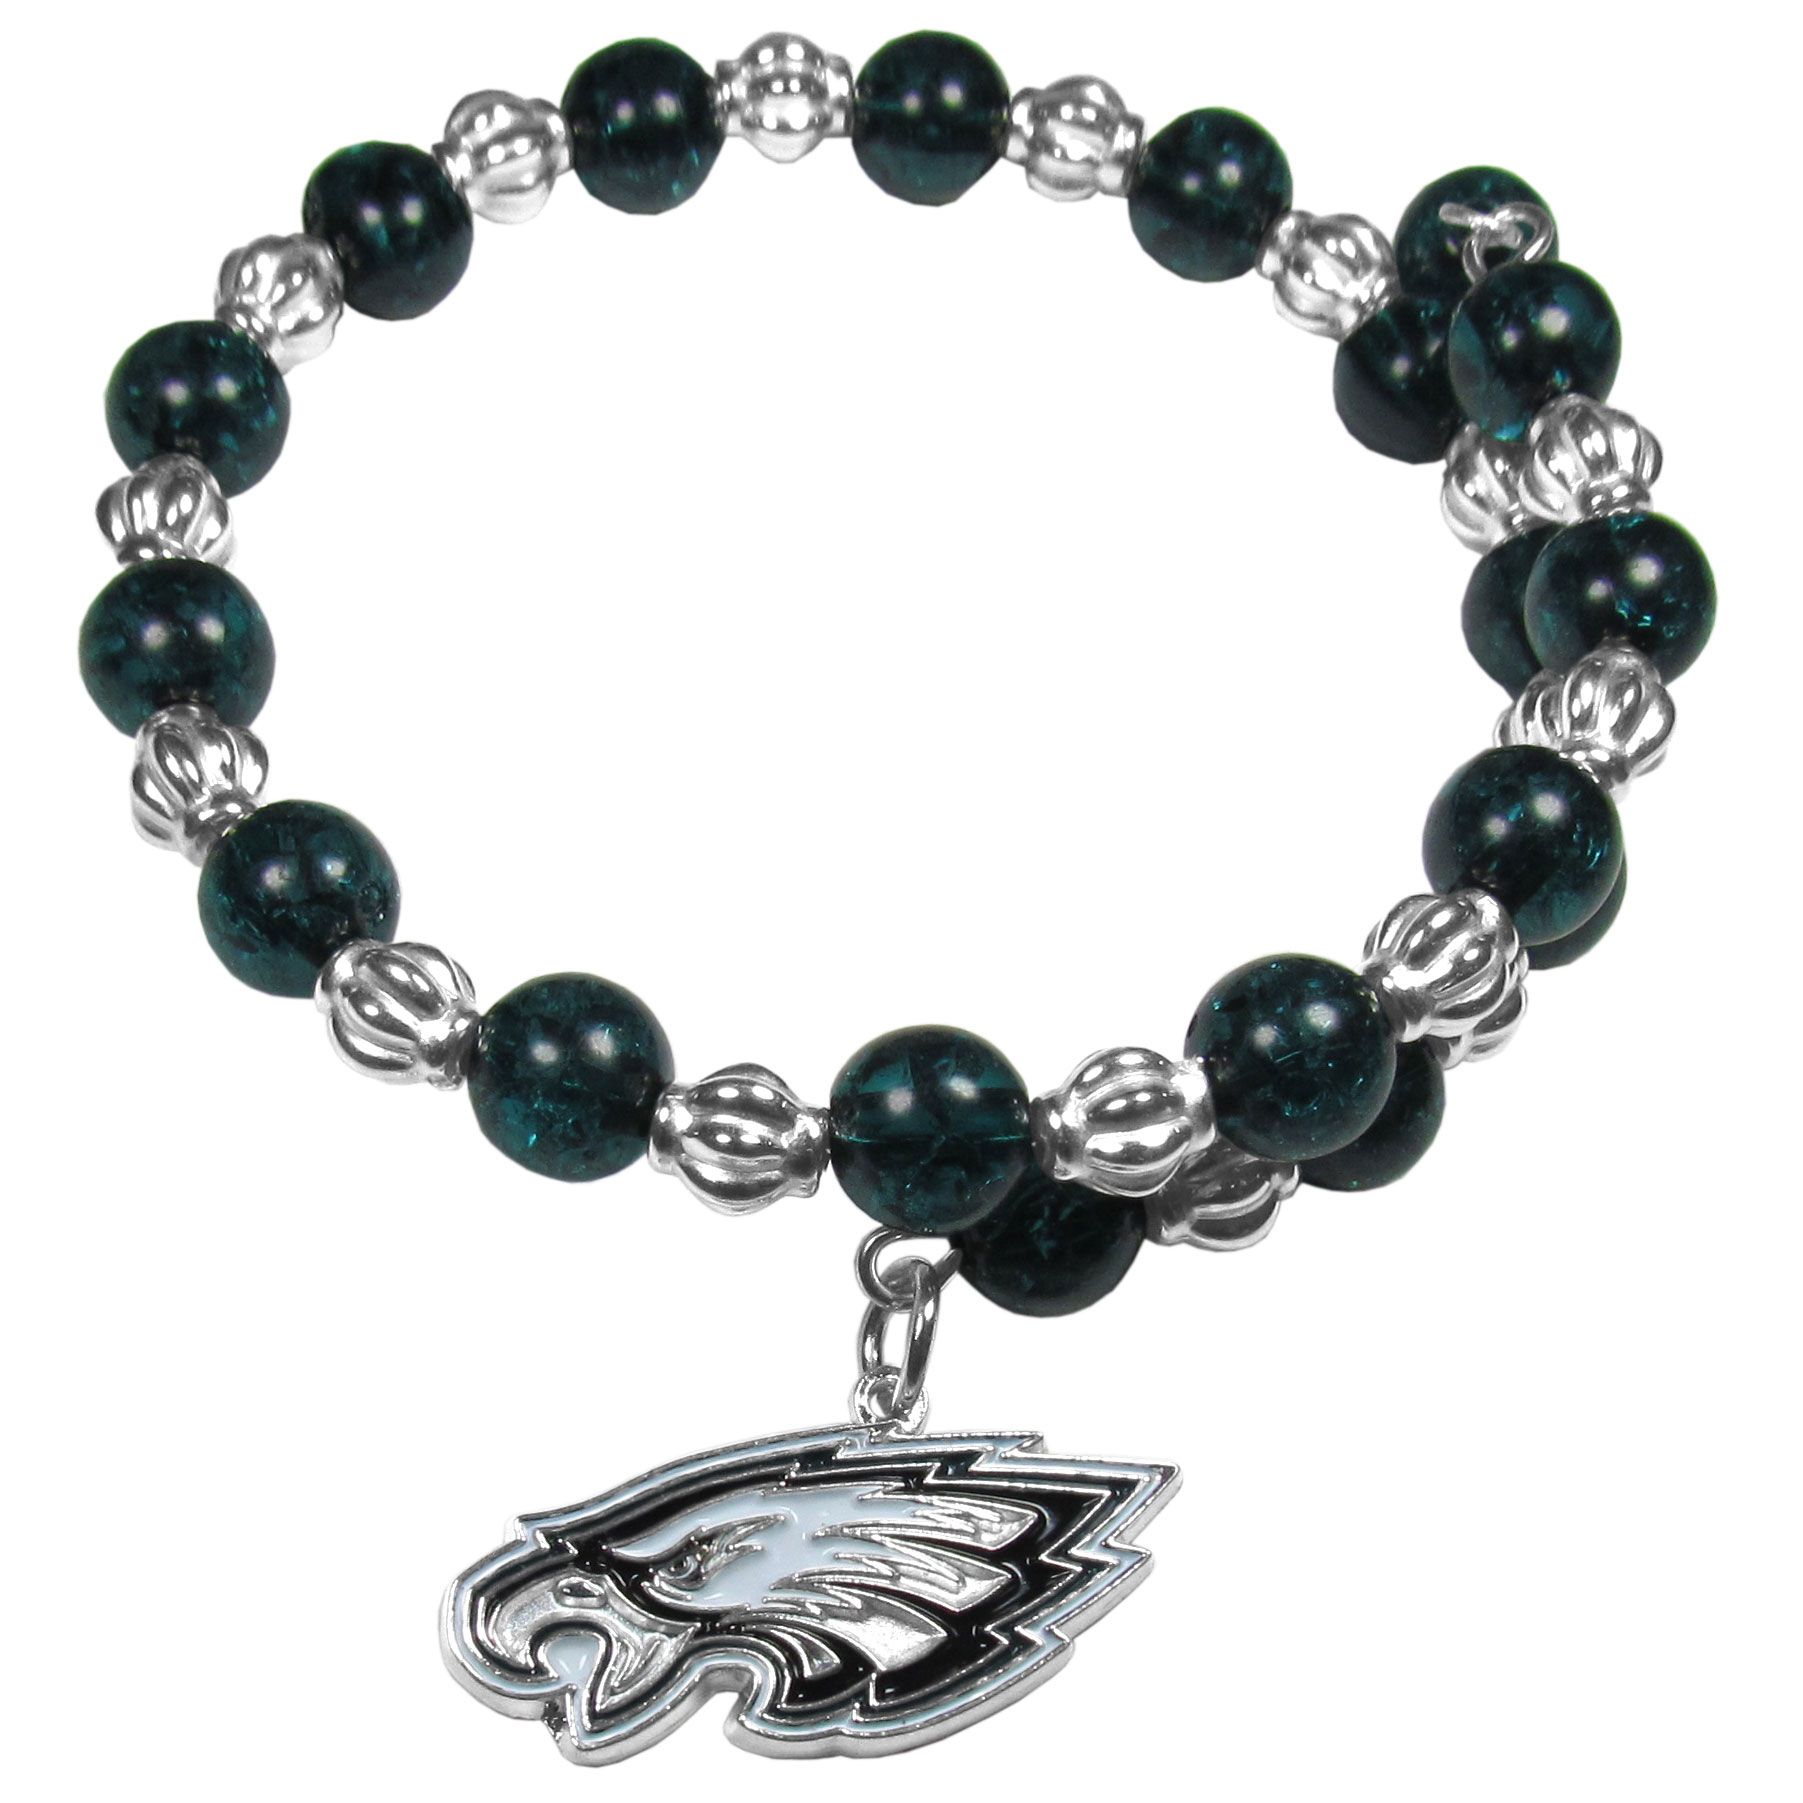 Philadelphia Eagles Bead Memory Wire Bracelet - Our Philadelphia Eagles memory wire bead bracelet is trendy way to show off your love of the game. The double wrap bracelet is completely covered in 7.5 mm beads that are broken up with silvertoned beads creating a designer look with a sporty twist. The bracelet features a fully cast, metal team charm that has expertly enameled team colors. This fashion jewelry piece is a must-have for the die-hard fan that chic look that can dress up any outfit.